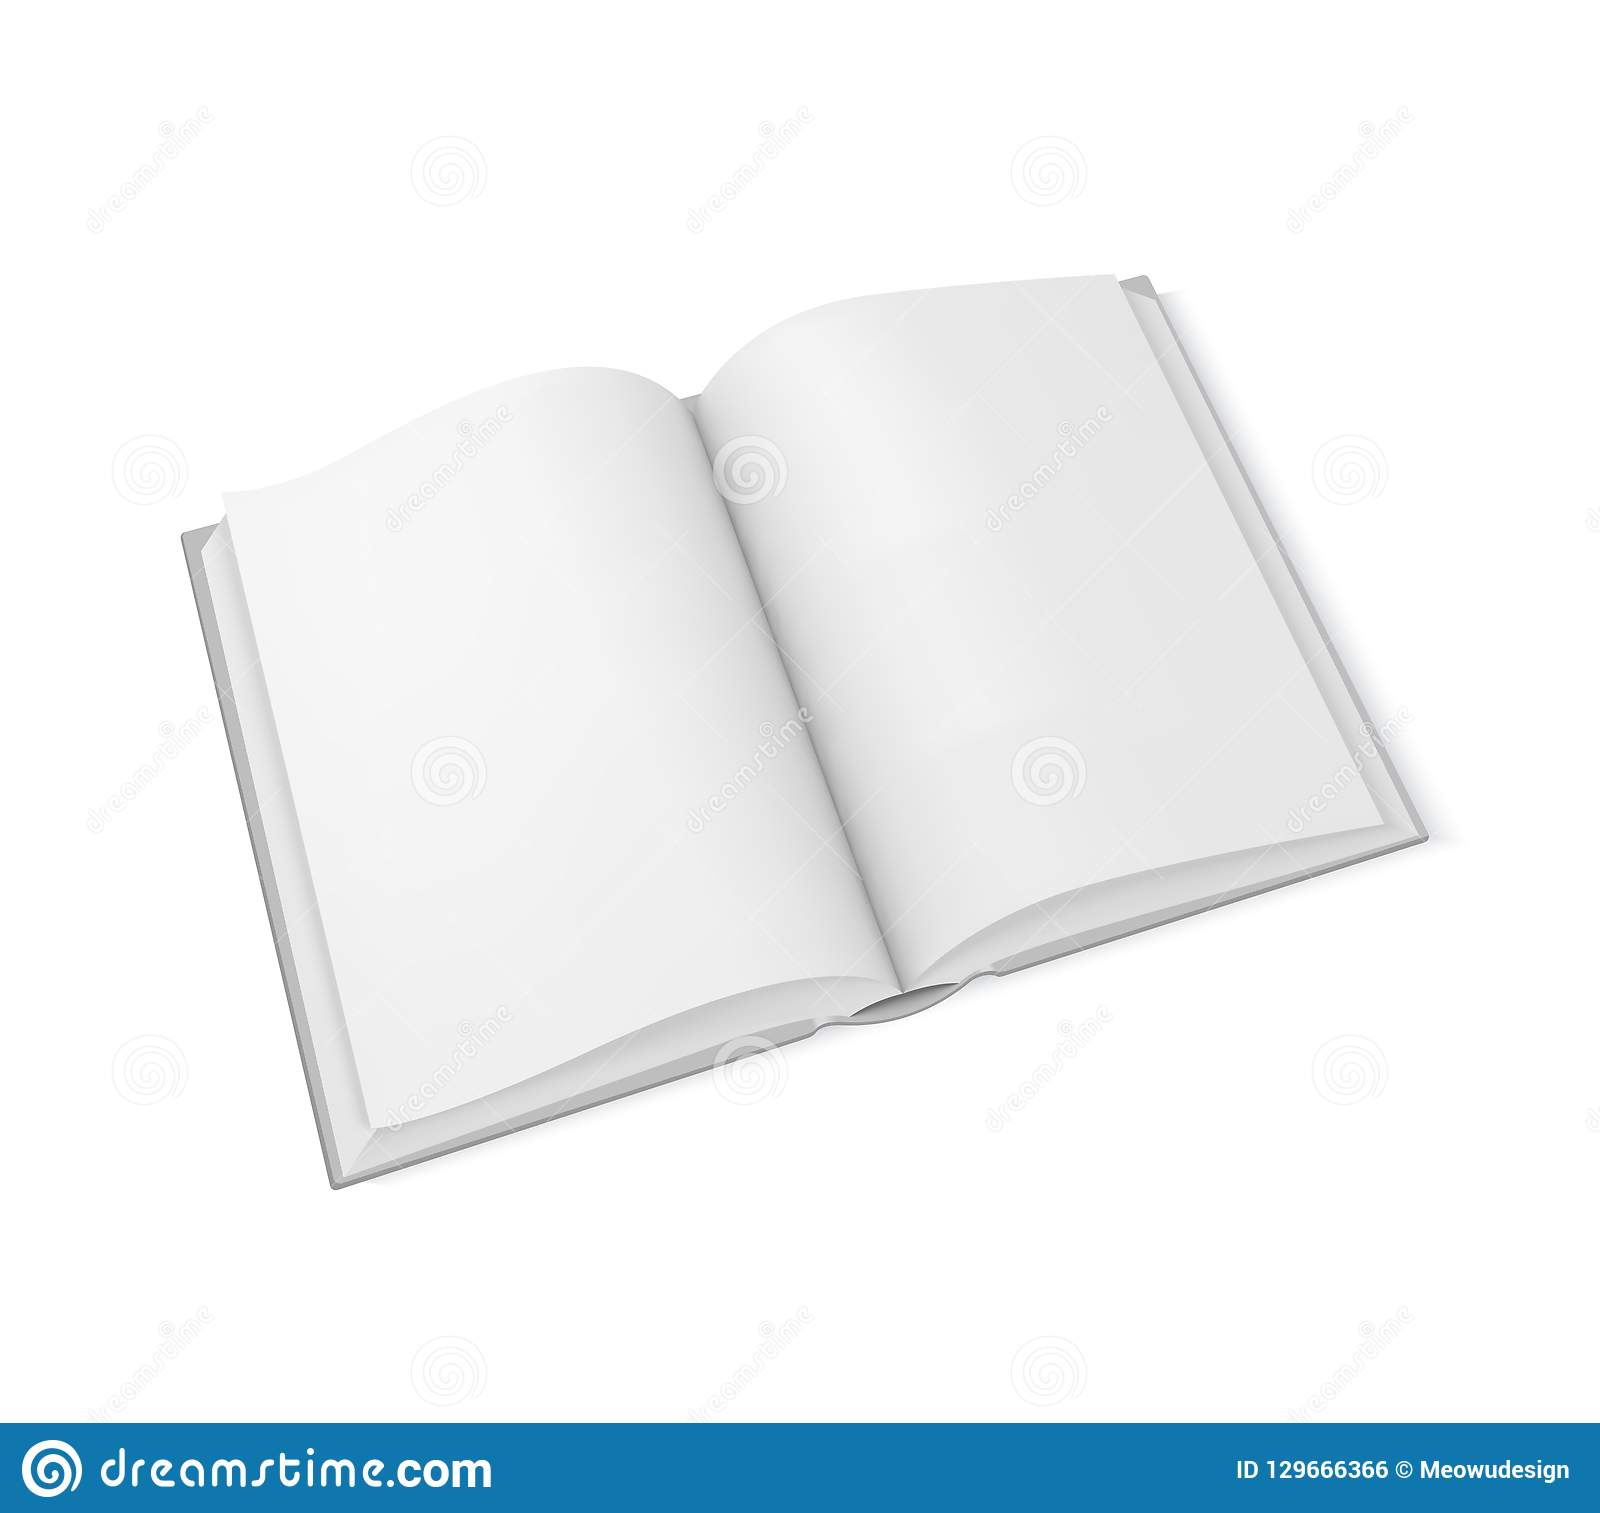 vector mockup open book template for design stock vector